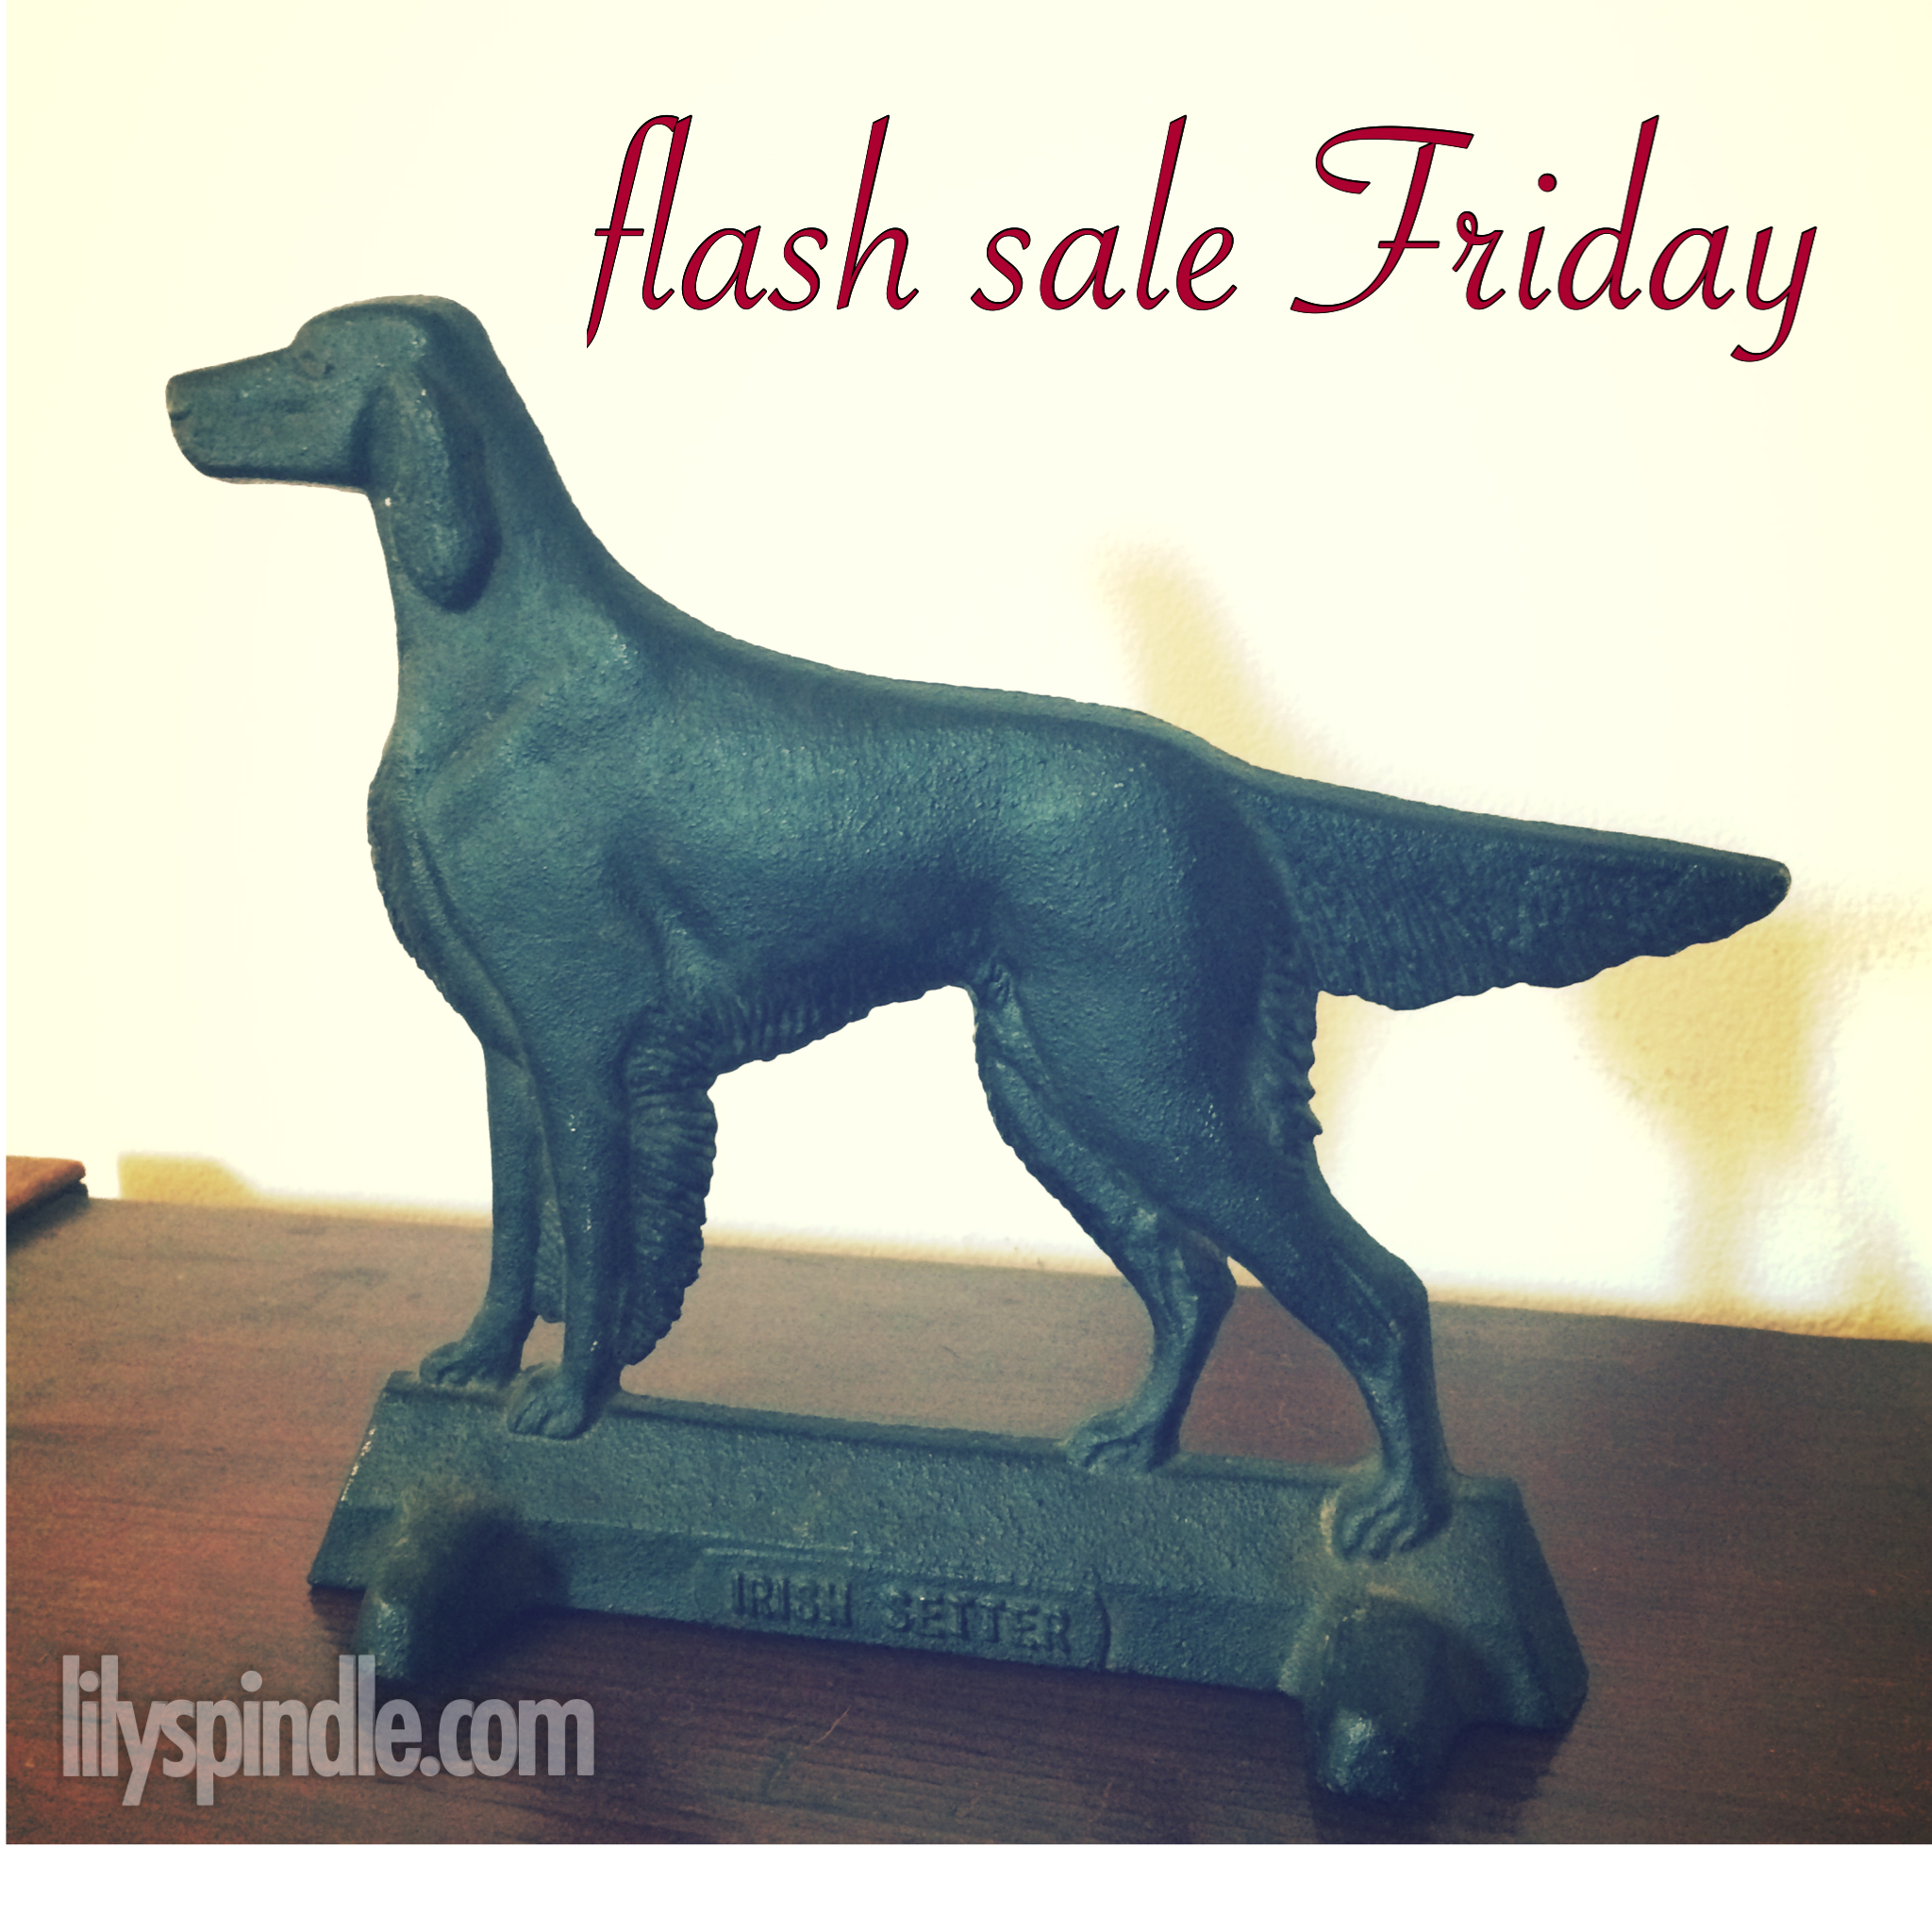 Lily Spindle's Flash Sale Friday